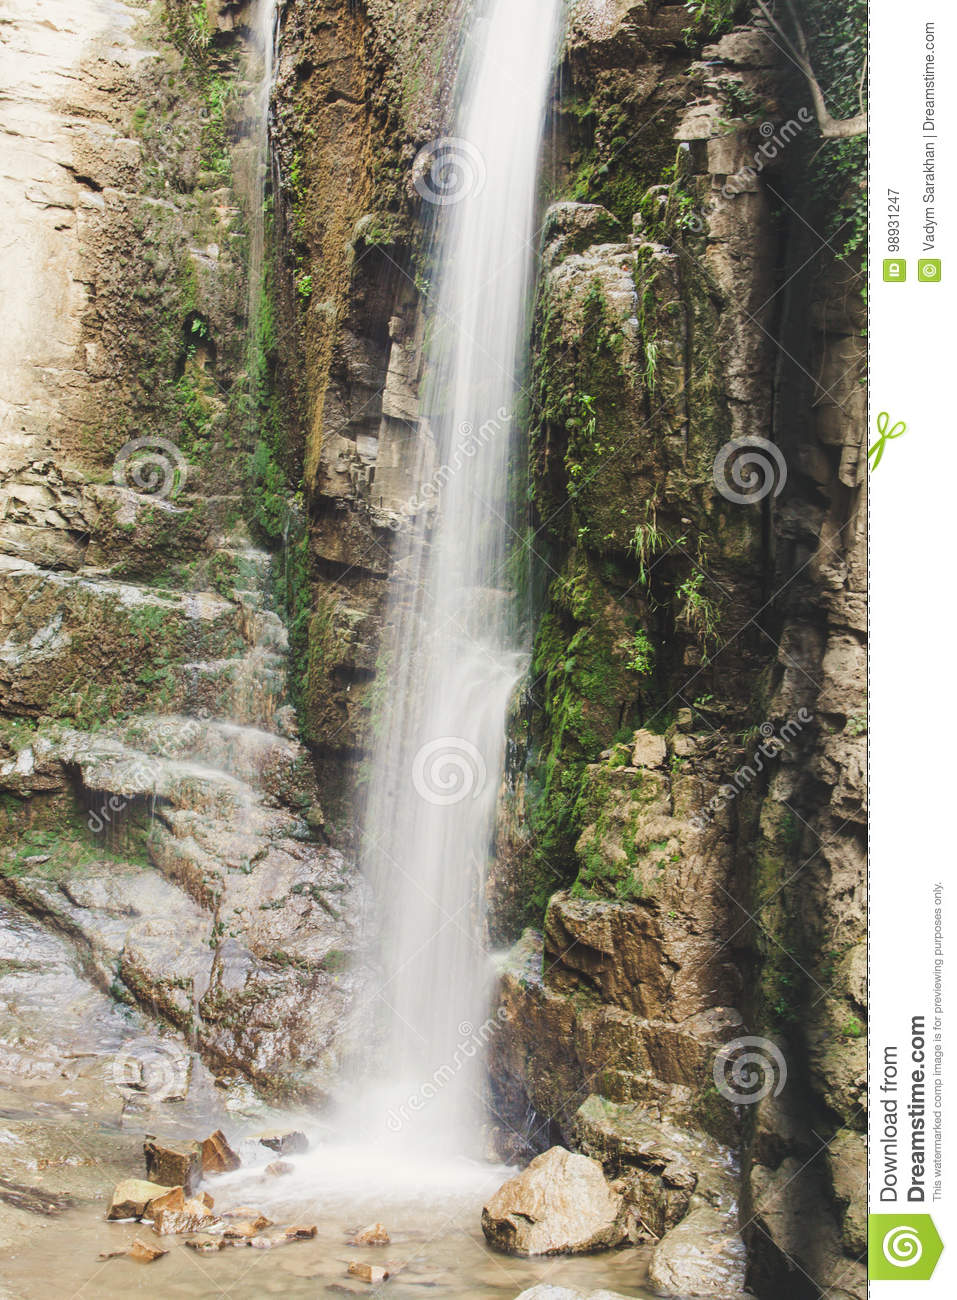 Waterfall in the mountains. Water falls from the mountain down to the rocks. It is photographed on an excerpt.